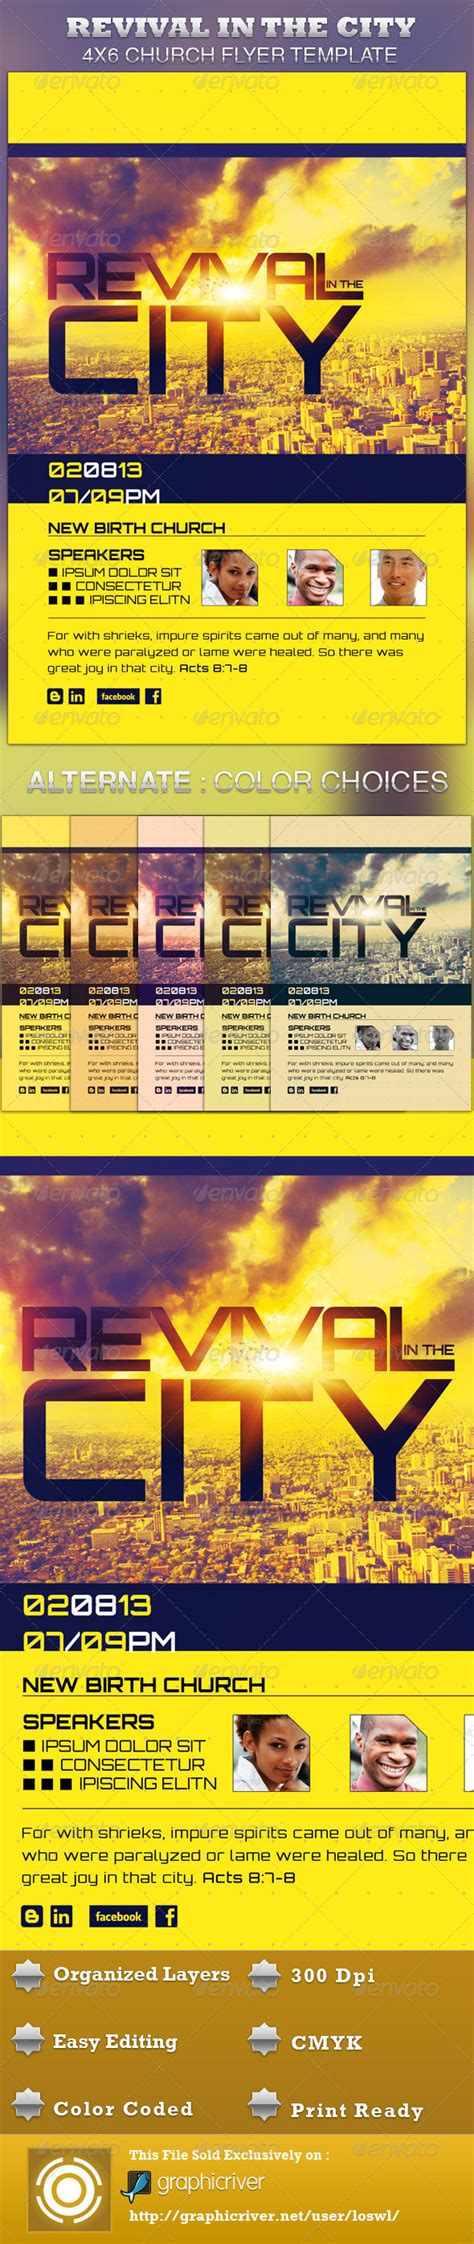 flyer template holy revival church free revival flyer template party invitations ideas